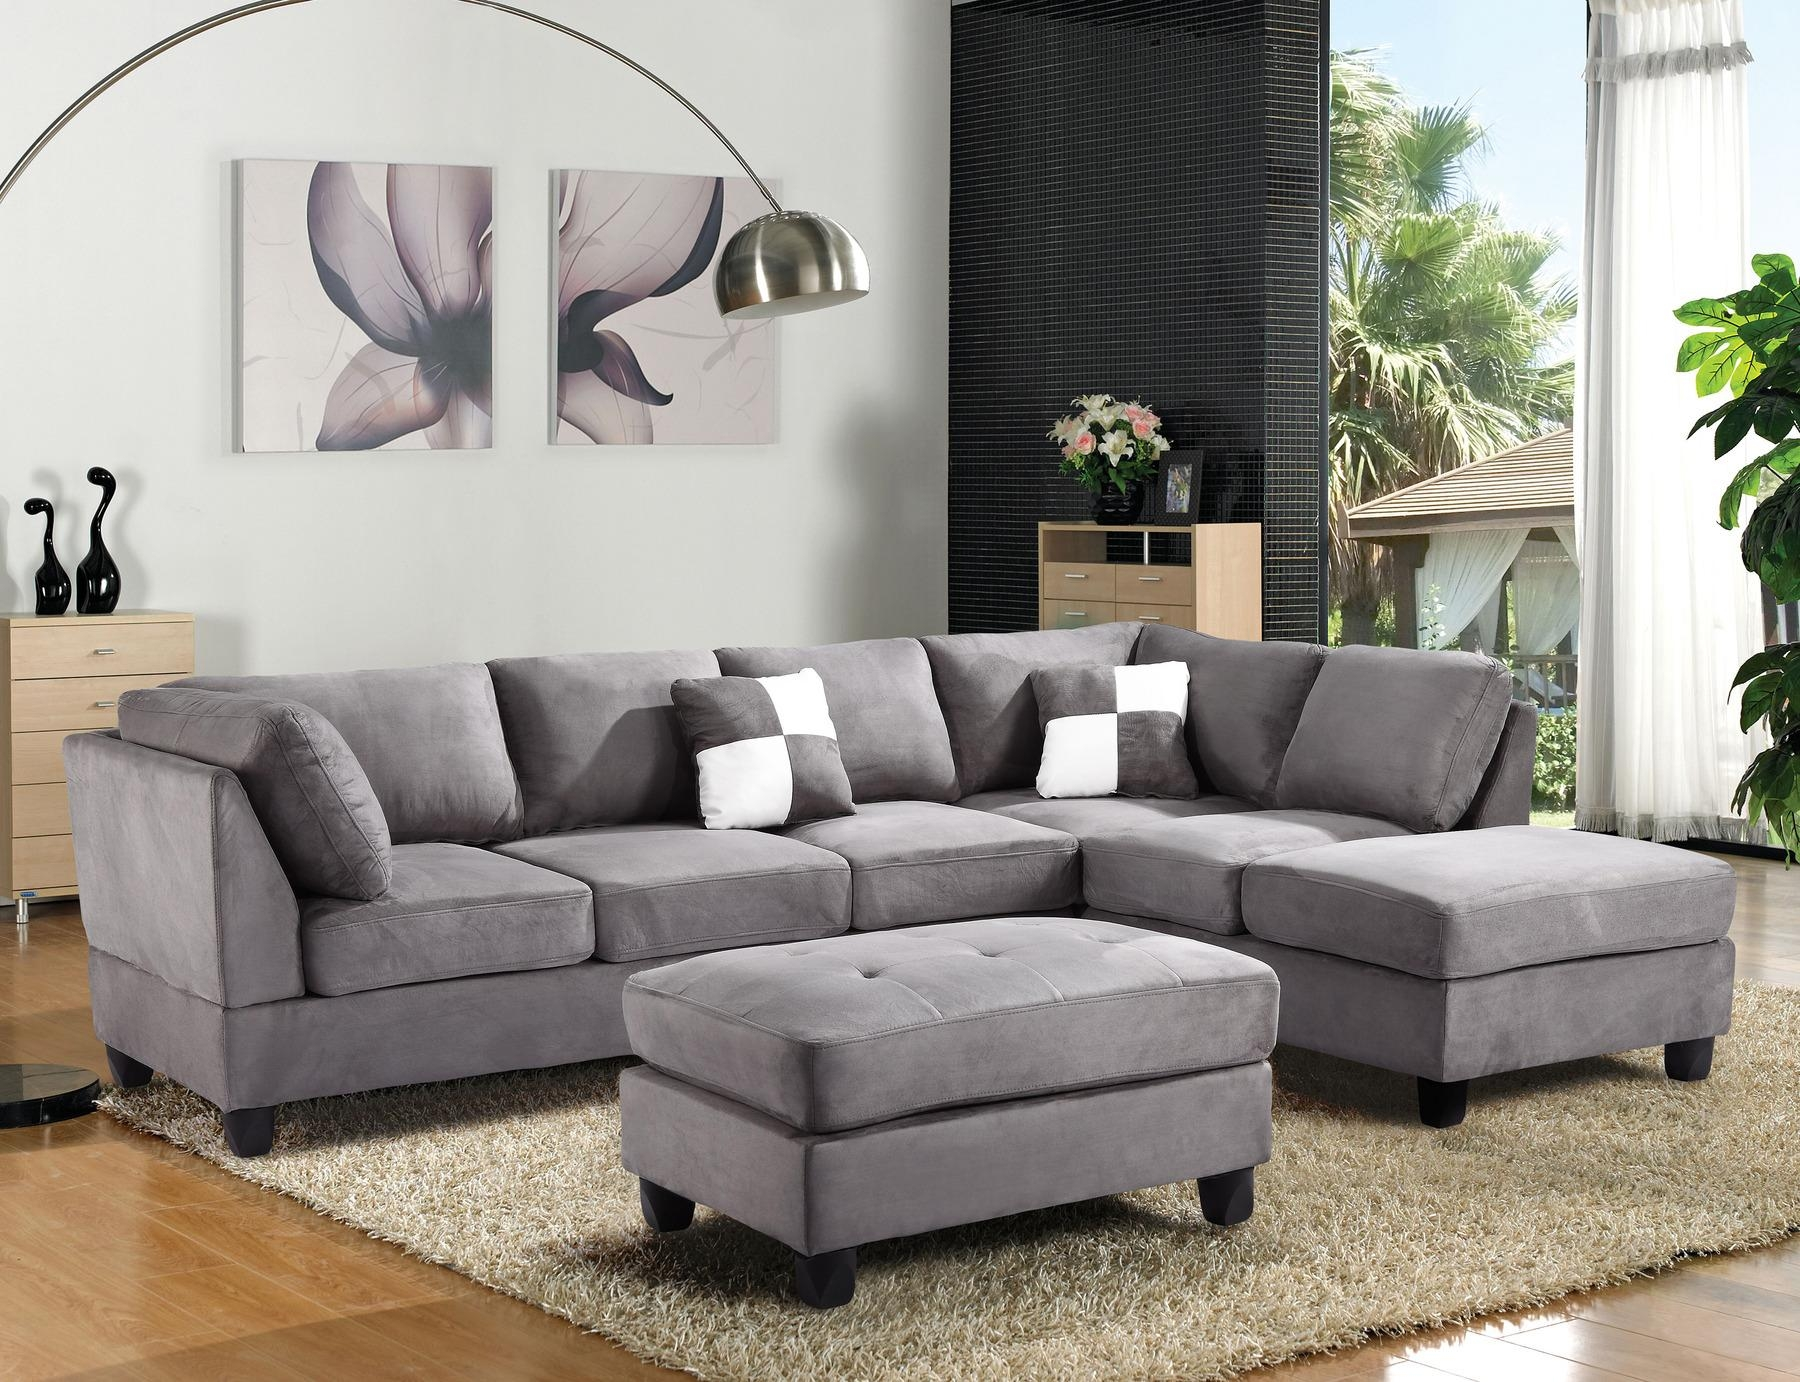 Sectional Sofas, Microfiber Sectional Sofas At Comfyco, Modern With Small Microfiber Sectional (View 9 of 20)